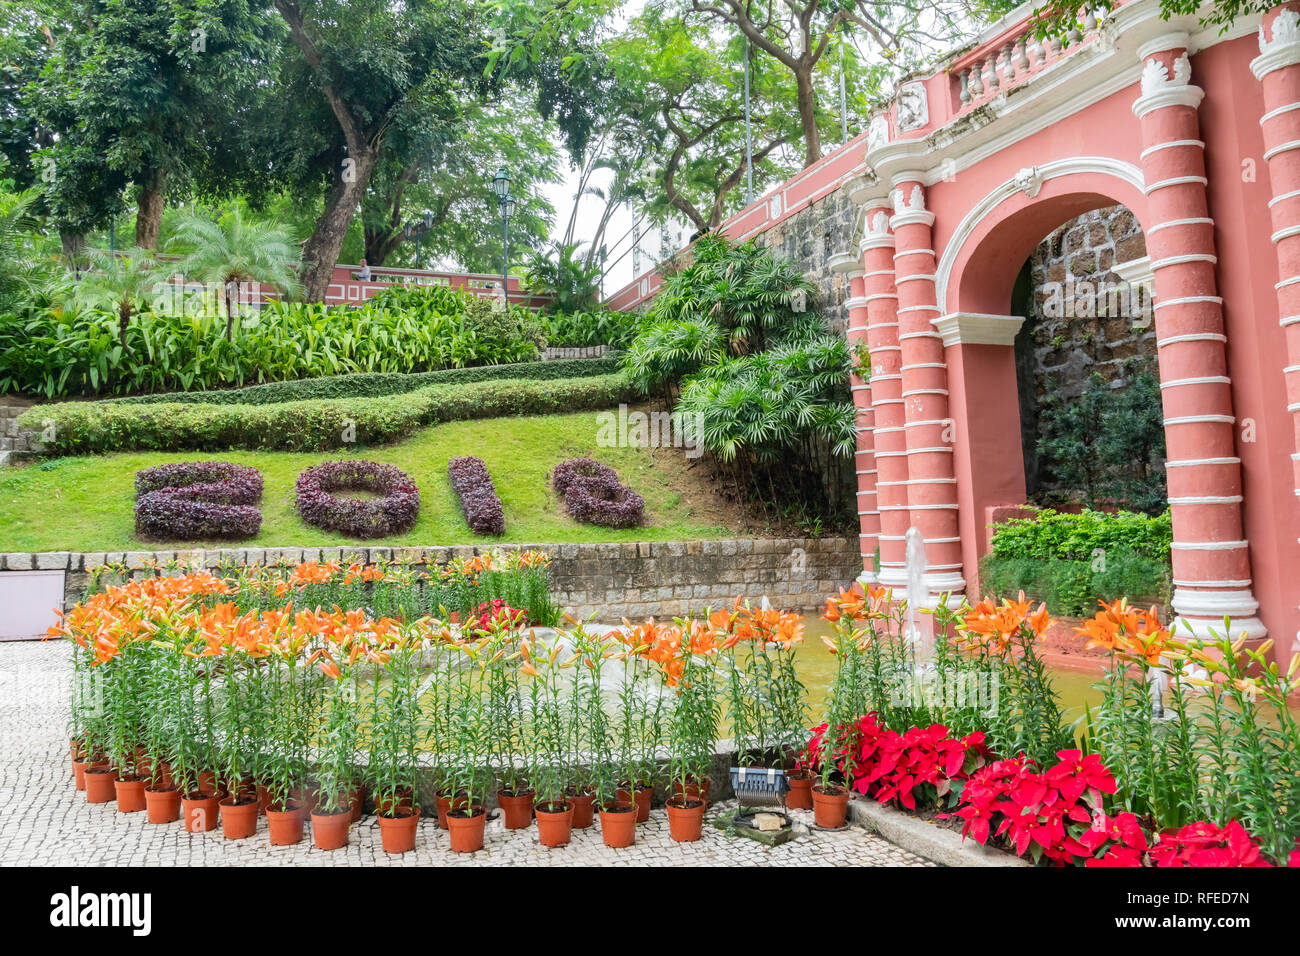 Montanha Russa Garden with lily and poinsettia blossom at Macau - Stock Image